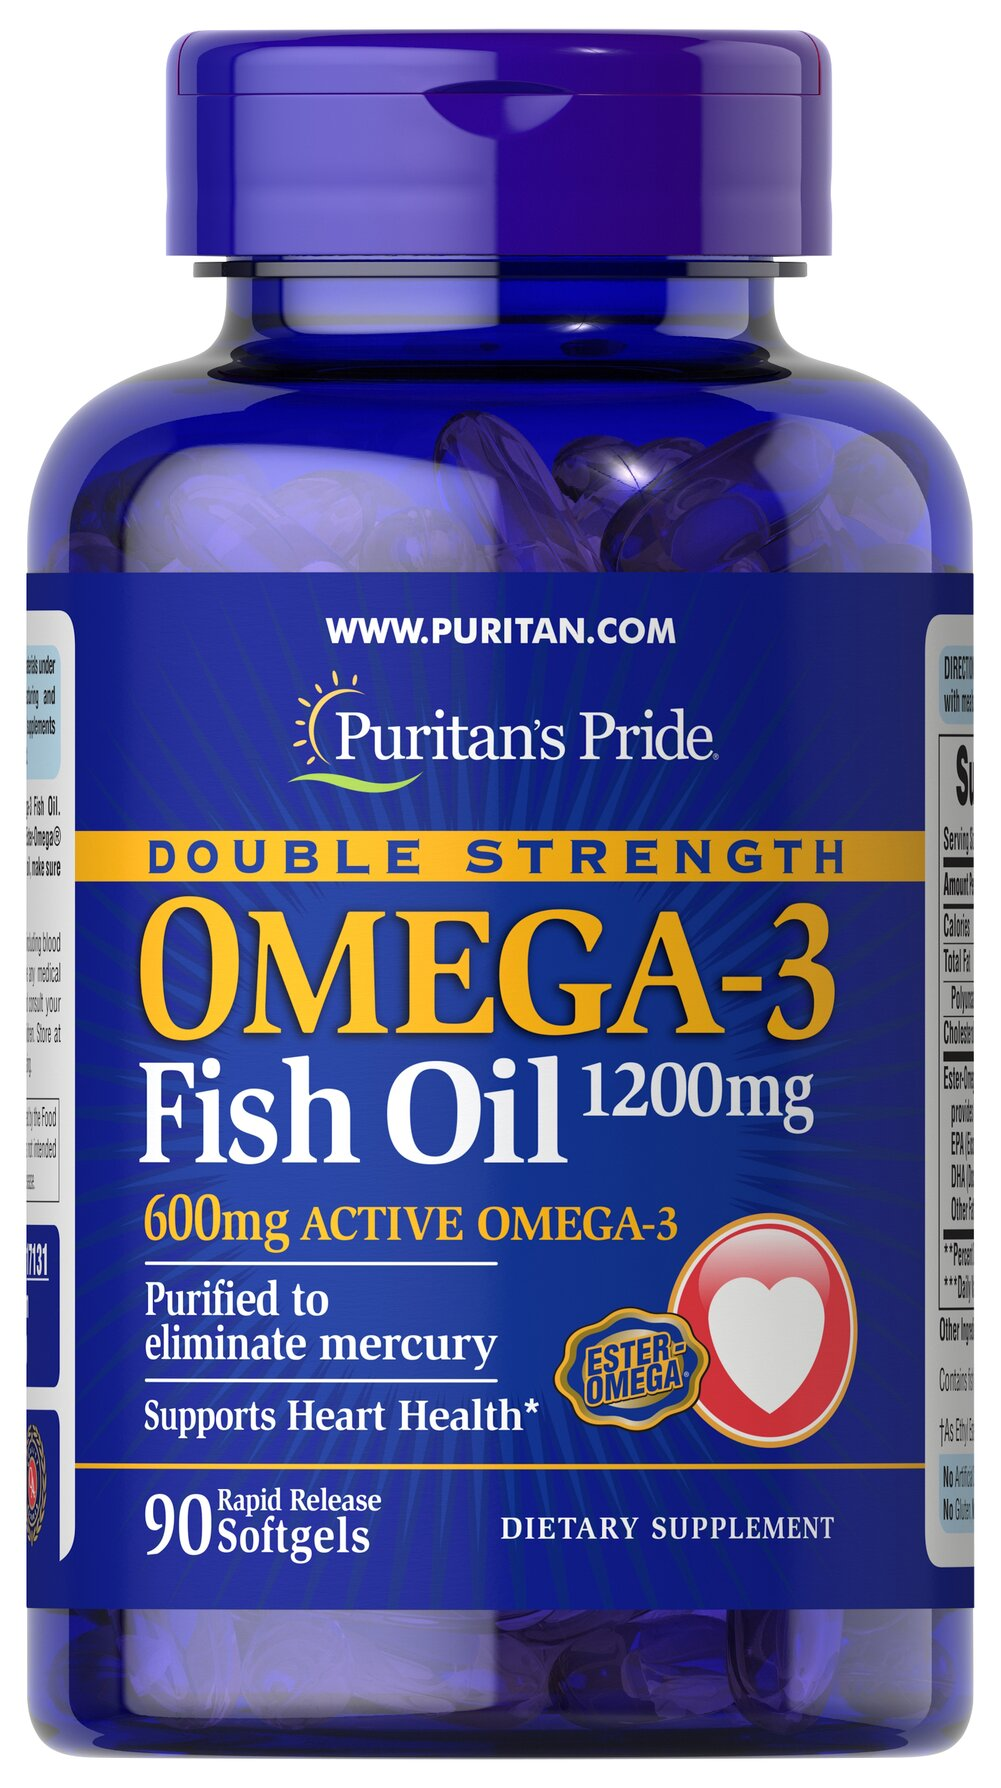 Double Strength Omega-3 Fish Oil 1200 mg/600 mg Omega-3  90 Softgels 1200 mg